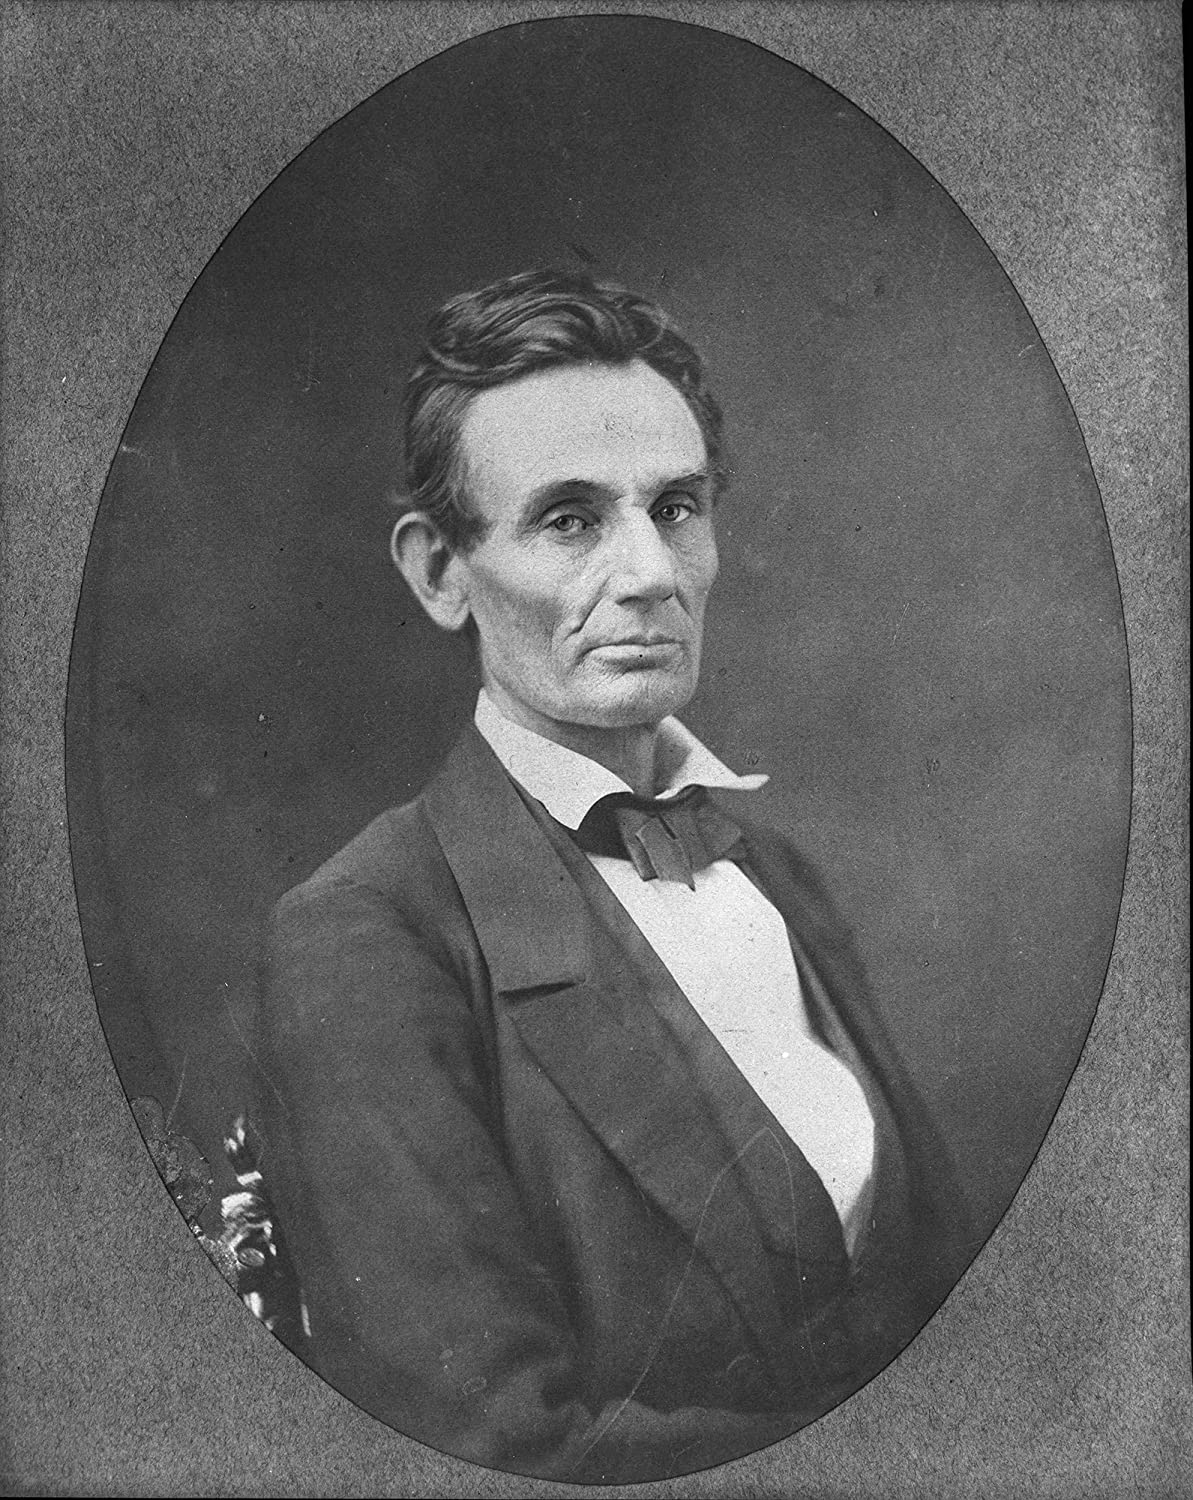 Abraham Lincoln Photograph 4 x 6 - Gloss Historical Artwork from 1859 -